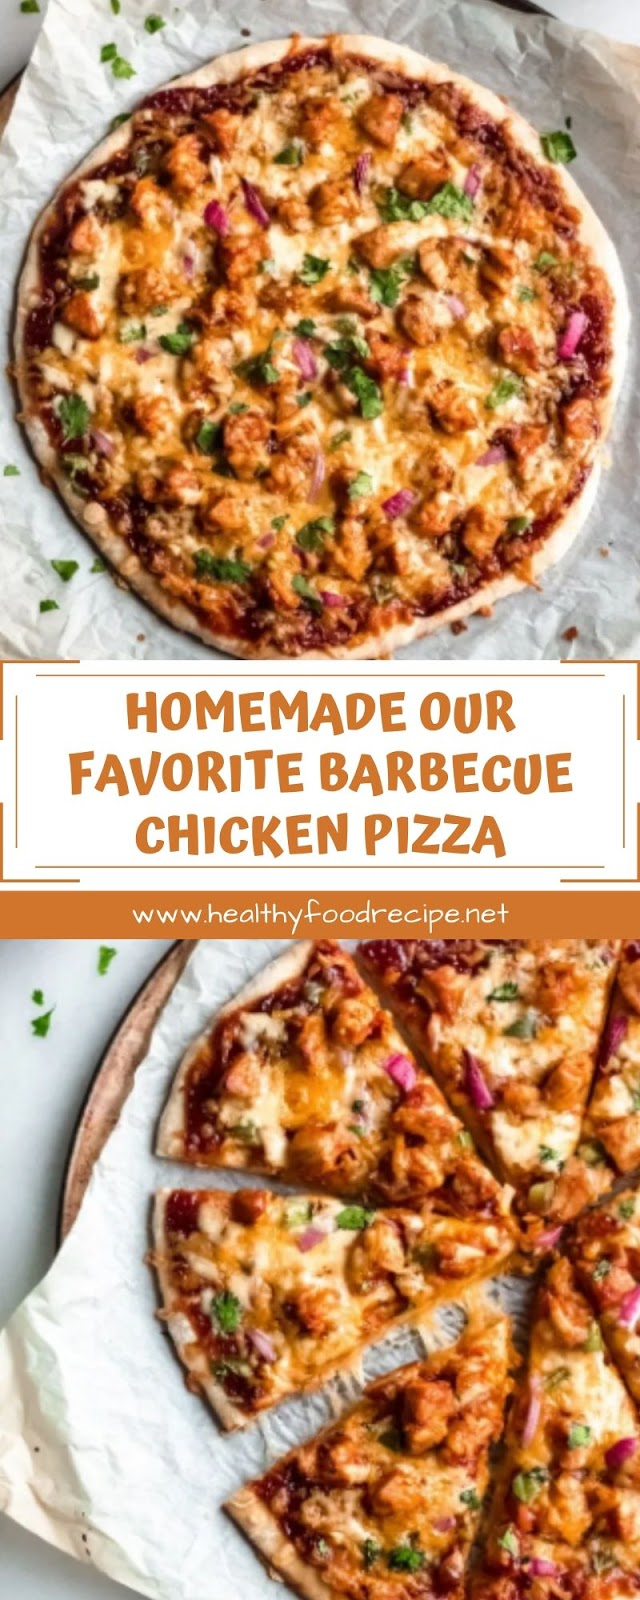 HOMEMADE OUR FAVORITE BARBECUE CHICKEN PIZZA